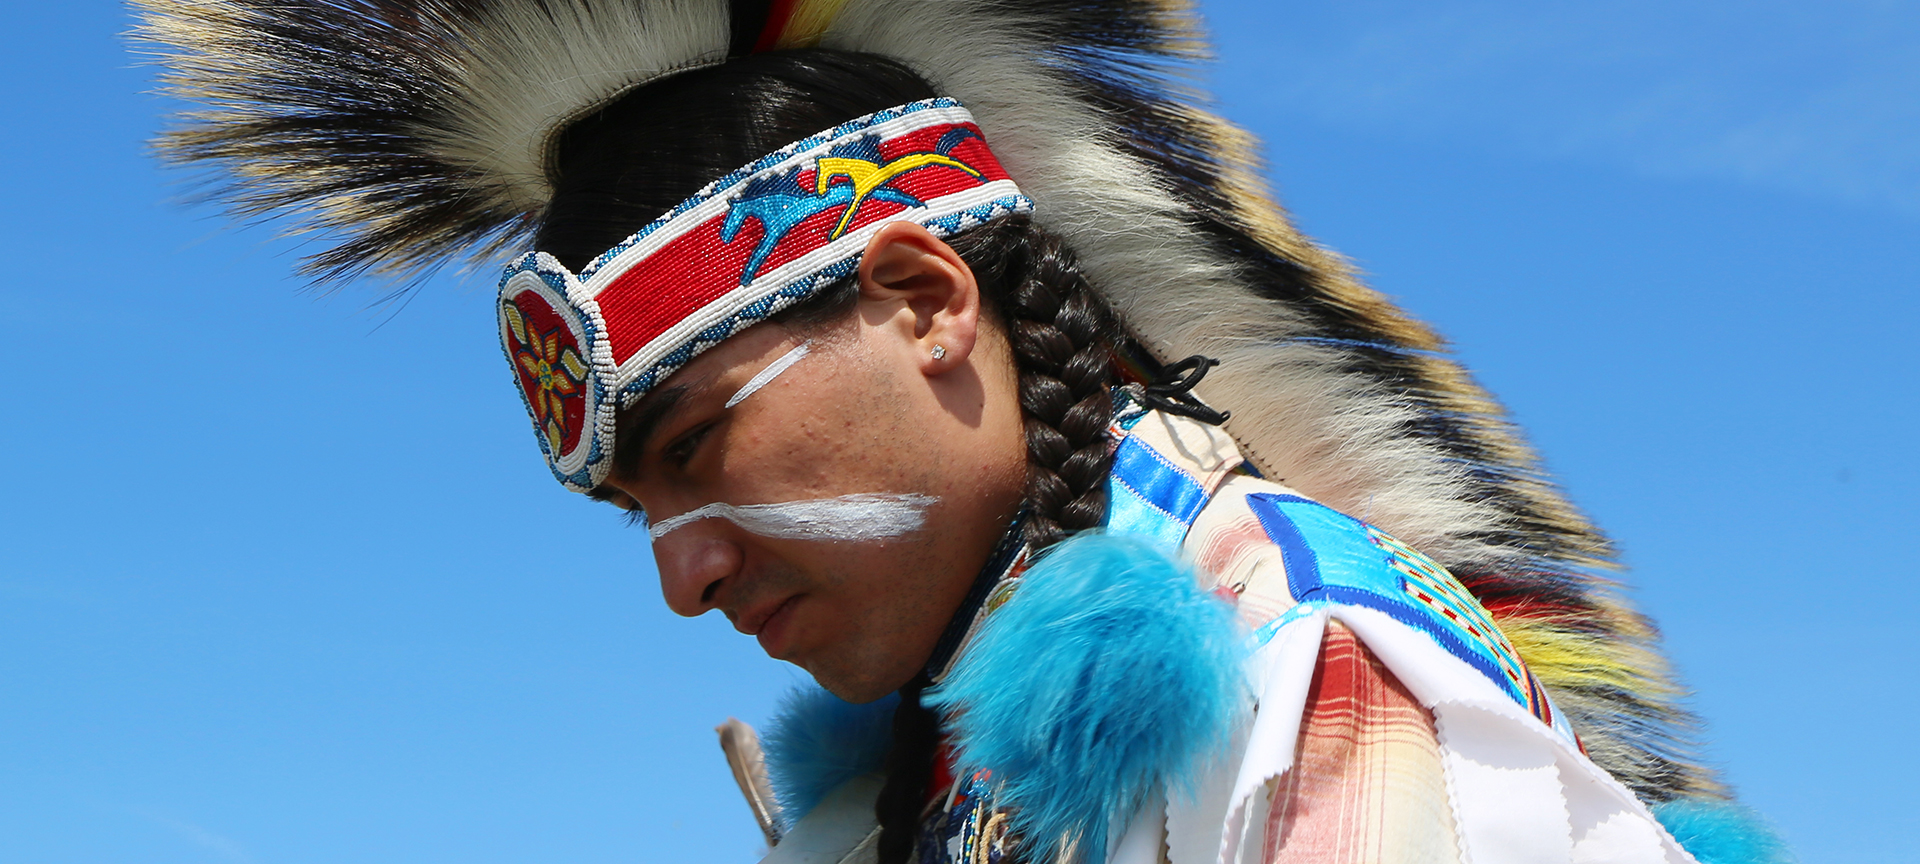 A modern pow wow is a specific type of event for Native American people to meet and dance, sing, socialise, and honour their cultures. There's generally a dancing competition, with many types of traditional dances, music and regalia, often with significant prize money awarded. Pow wows vary in length from a one-day event, to major pow wows called for a special occasion which can be up to a week long.